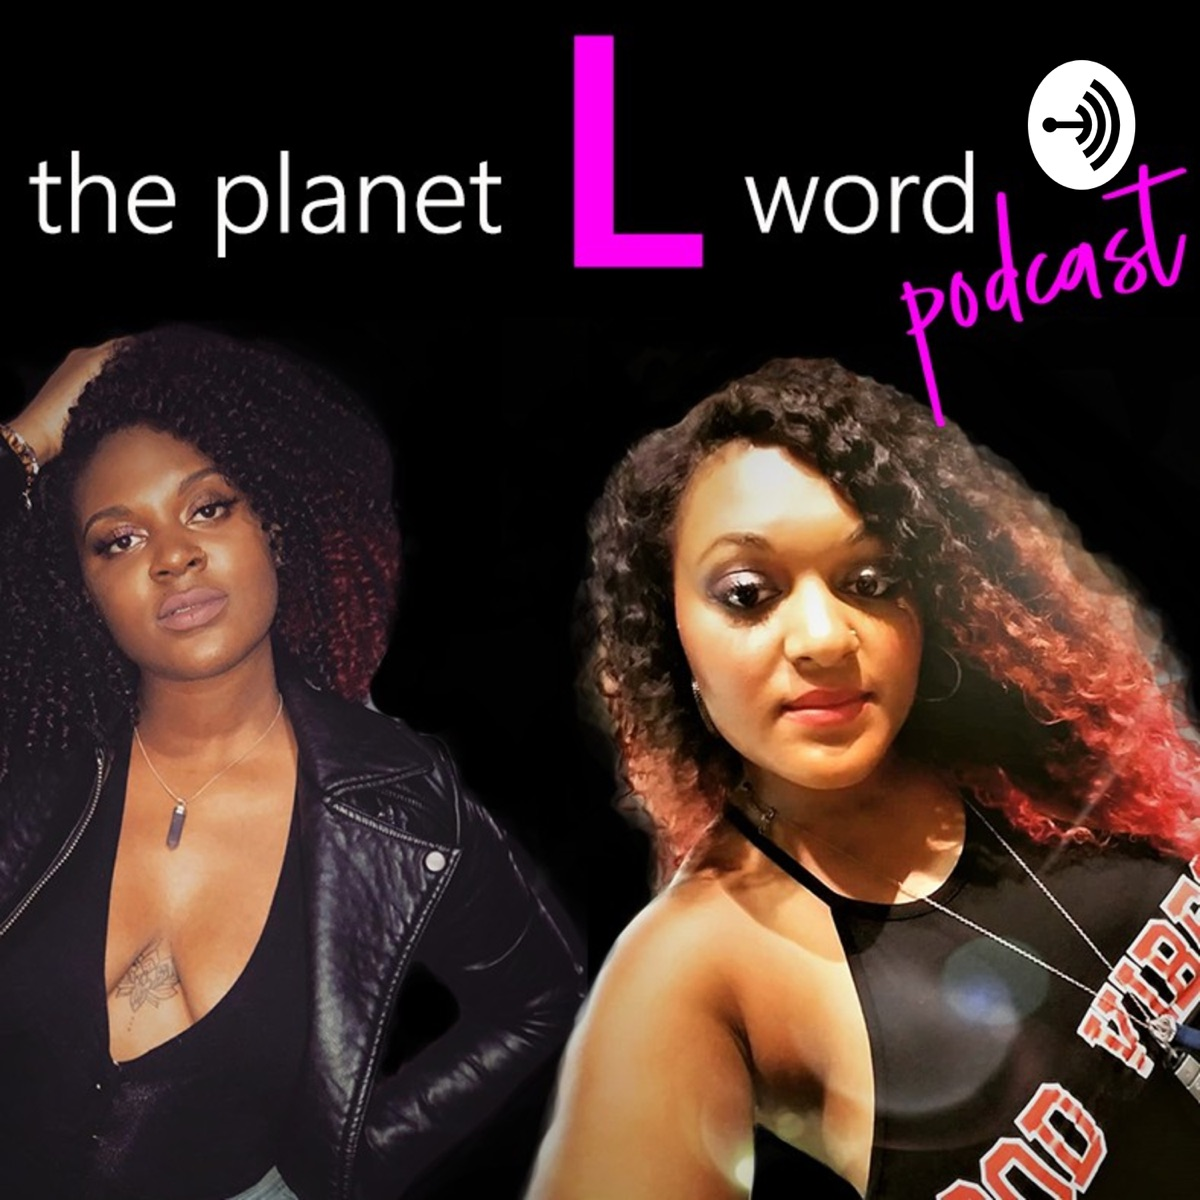 The Planet L word podcast